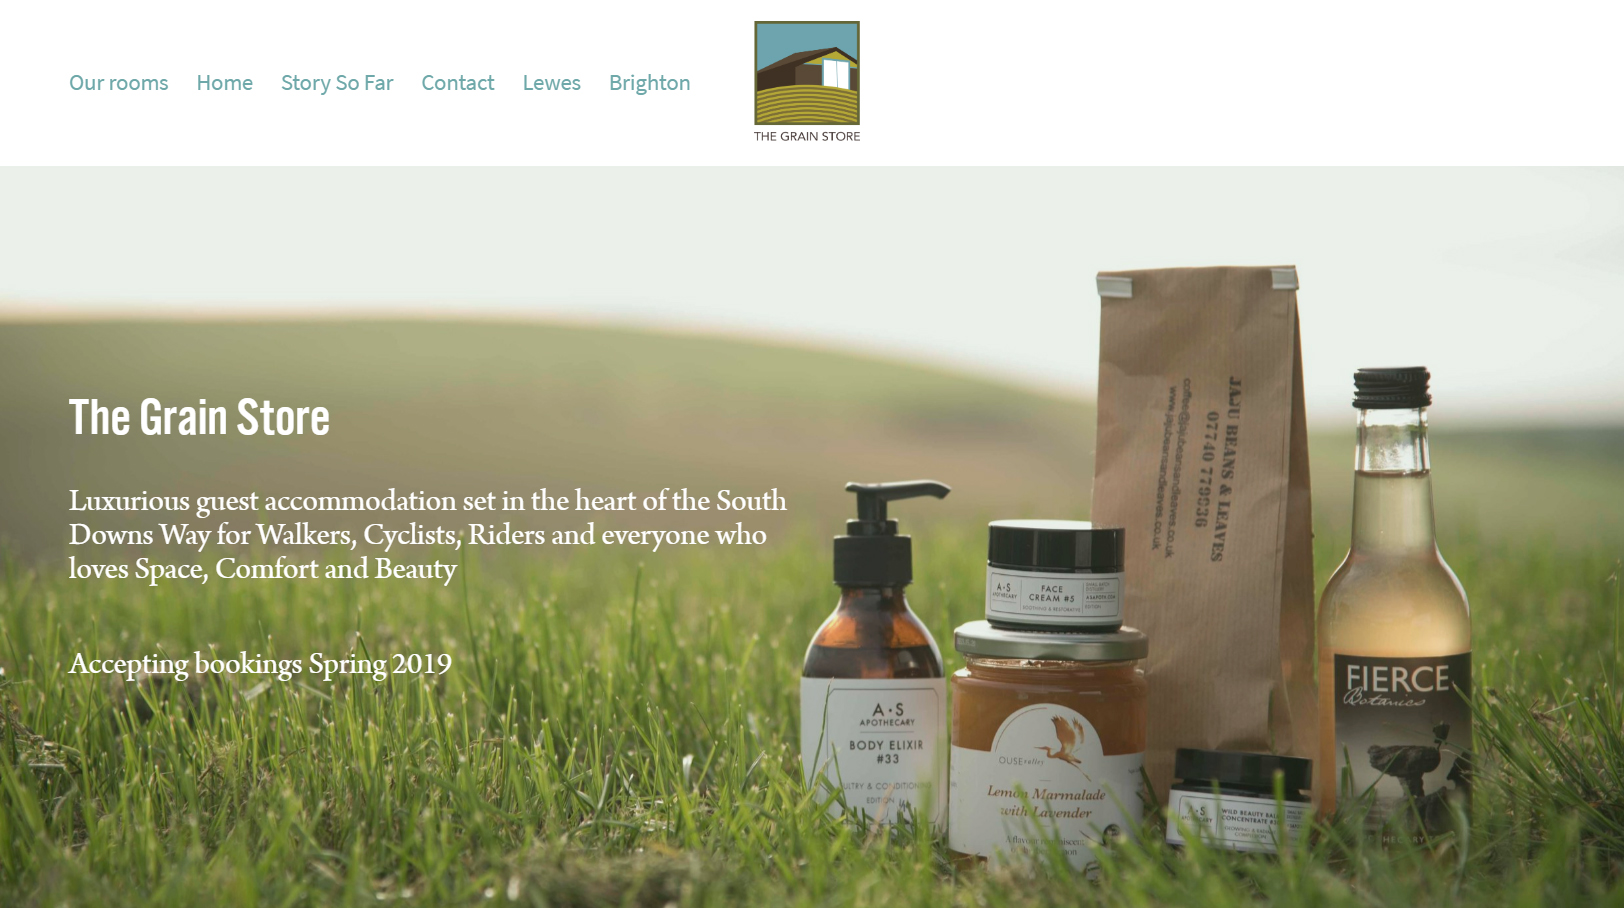 The Grain Store Home Page.jpg